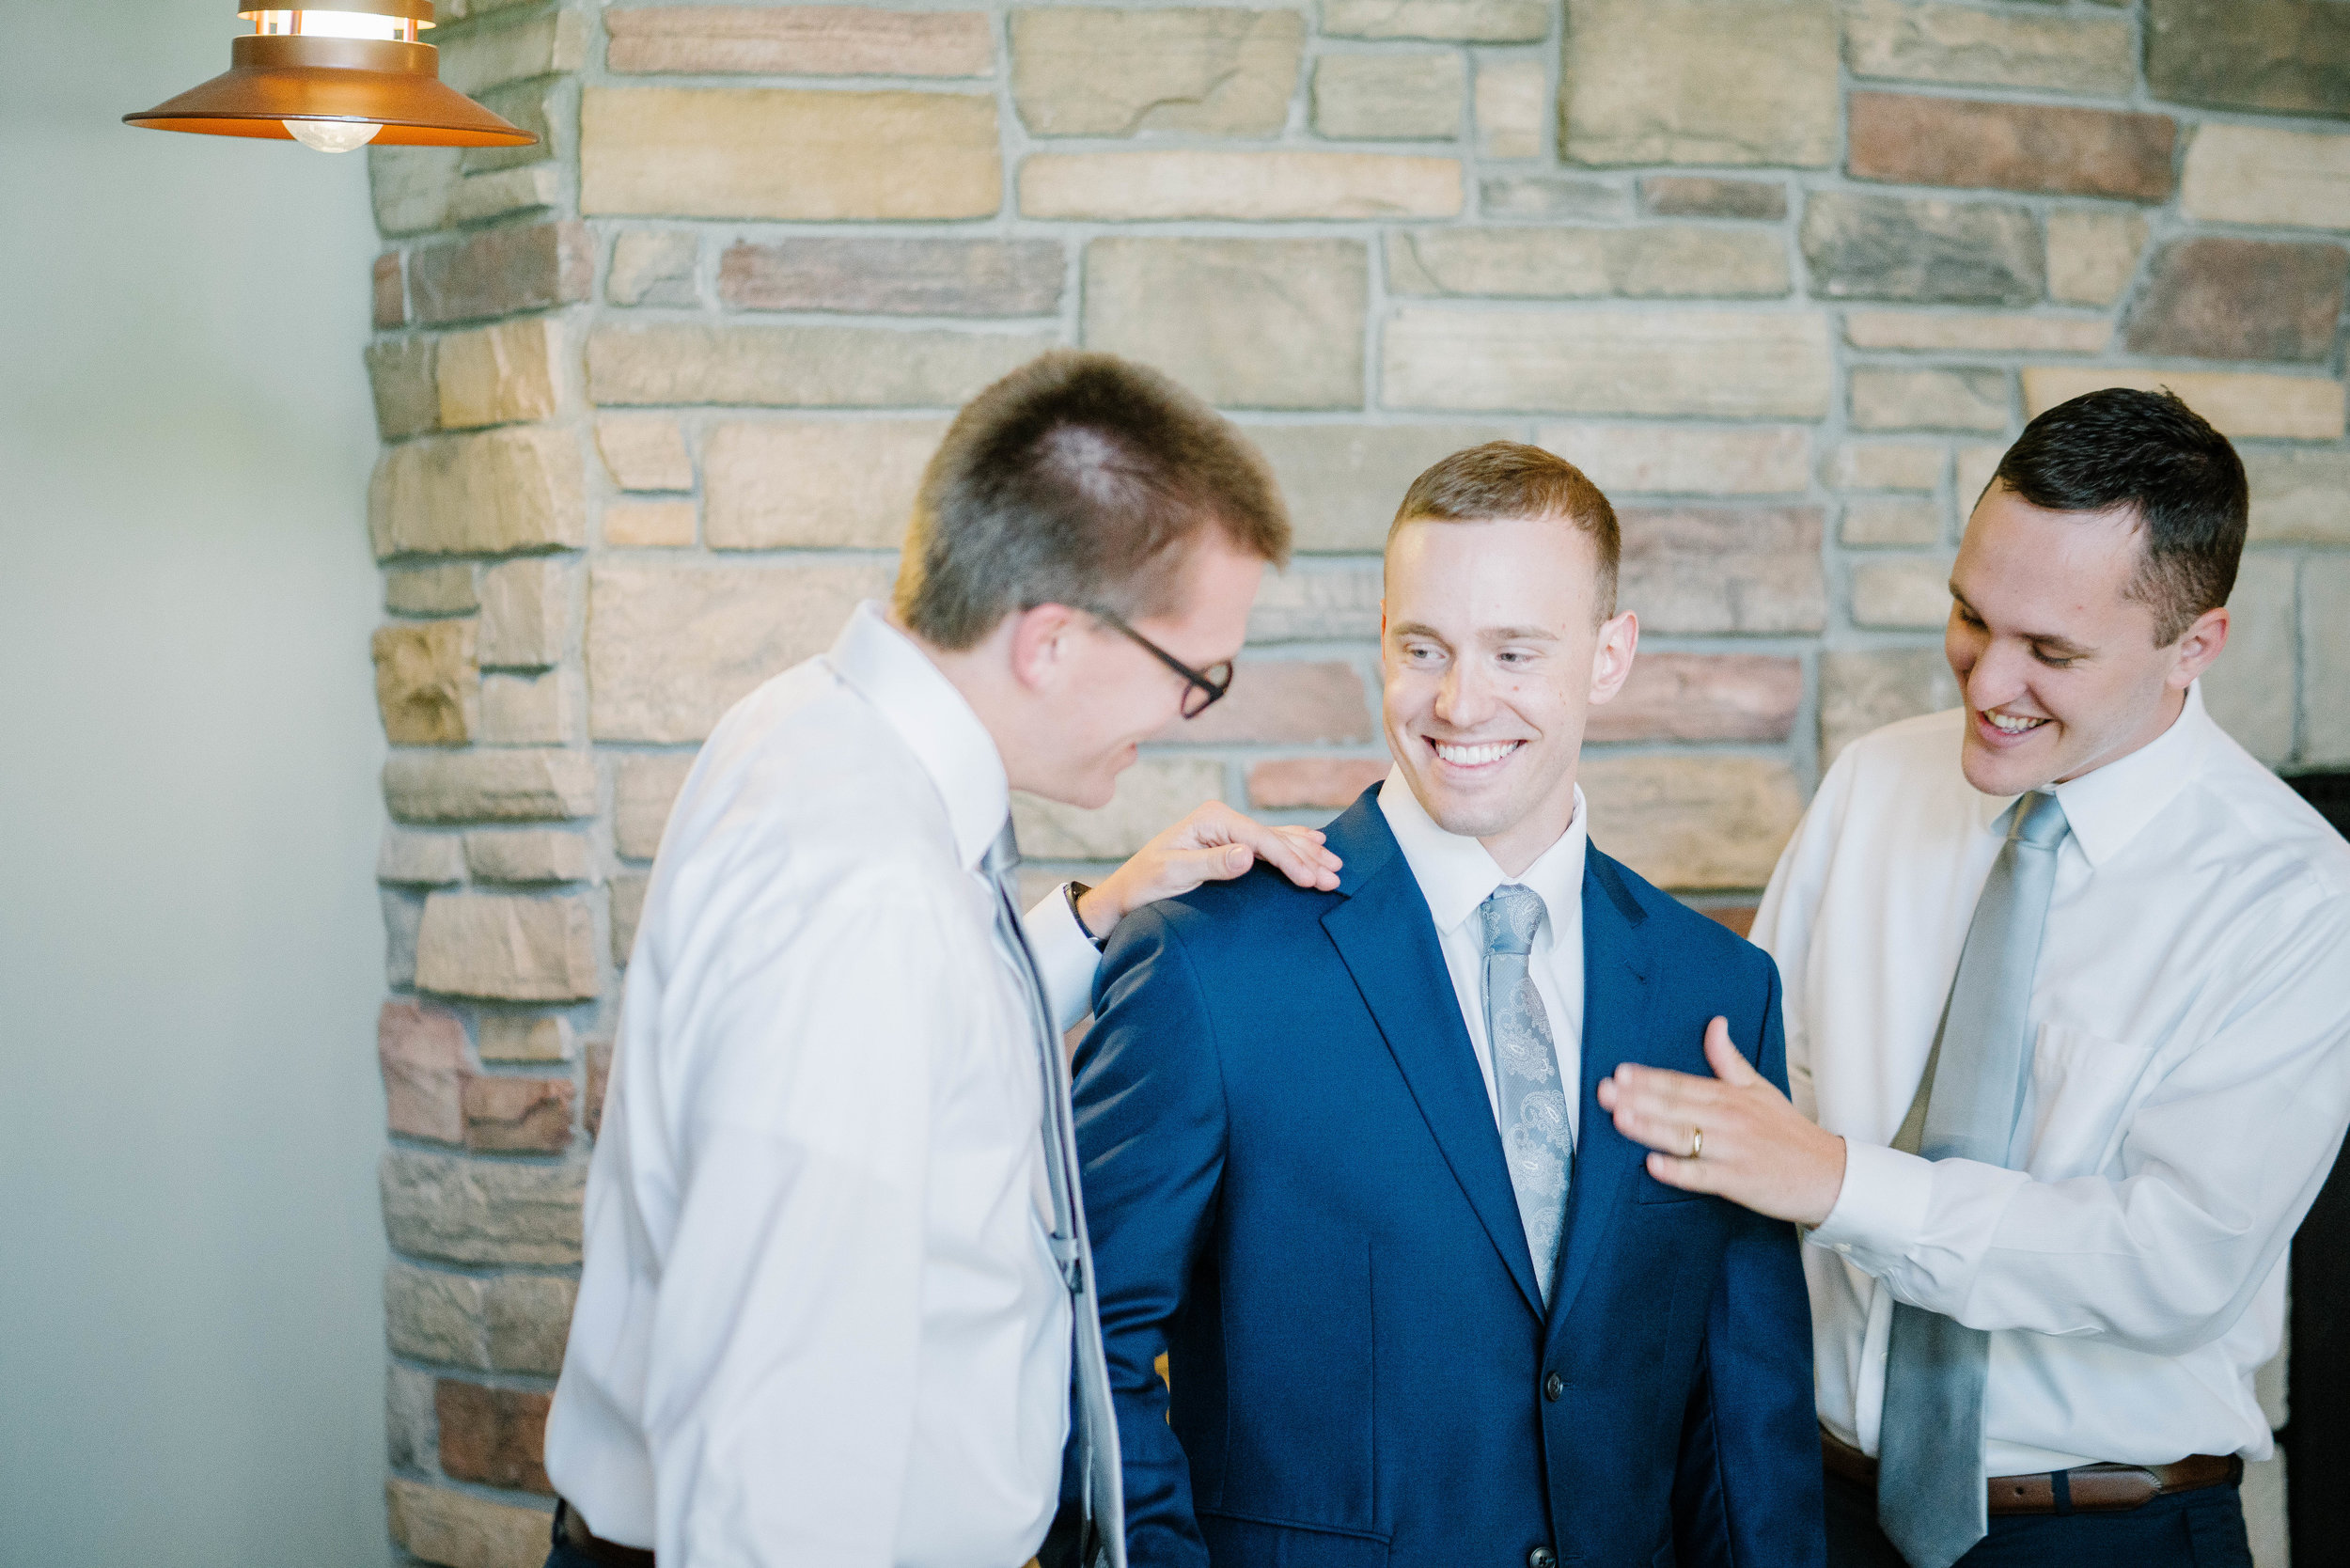 Boise Wedding Photographer- Nampa Wedding Photographer- The Grove Boise- Getting Ready Photos- Getting Ready Photo Ideas- Wedding Photo Ideas- Wedding Ideas- Dutch Bros Wedding Ideas